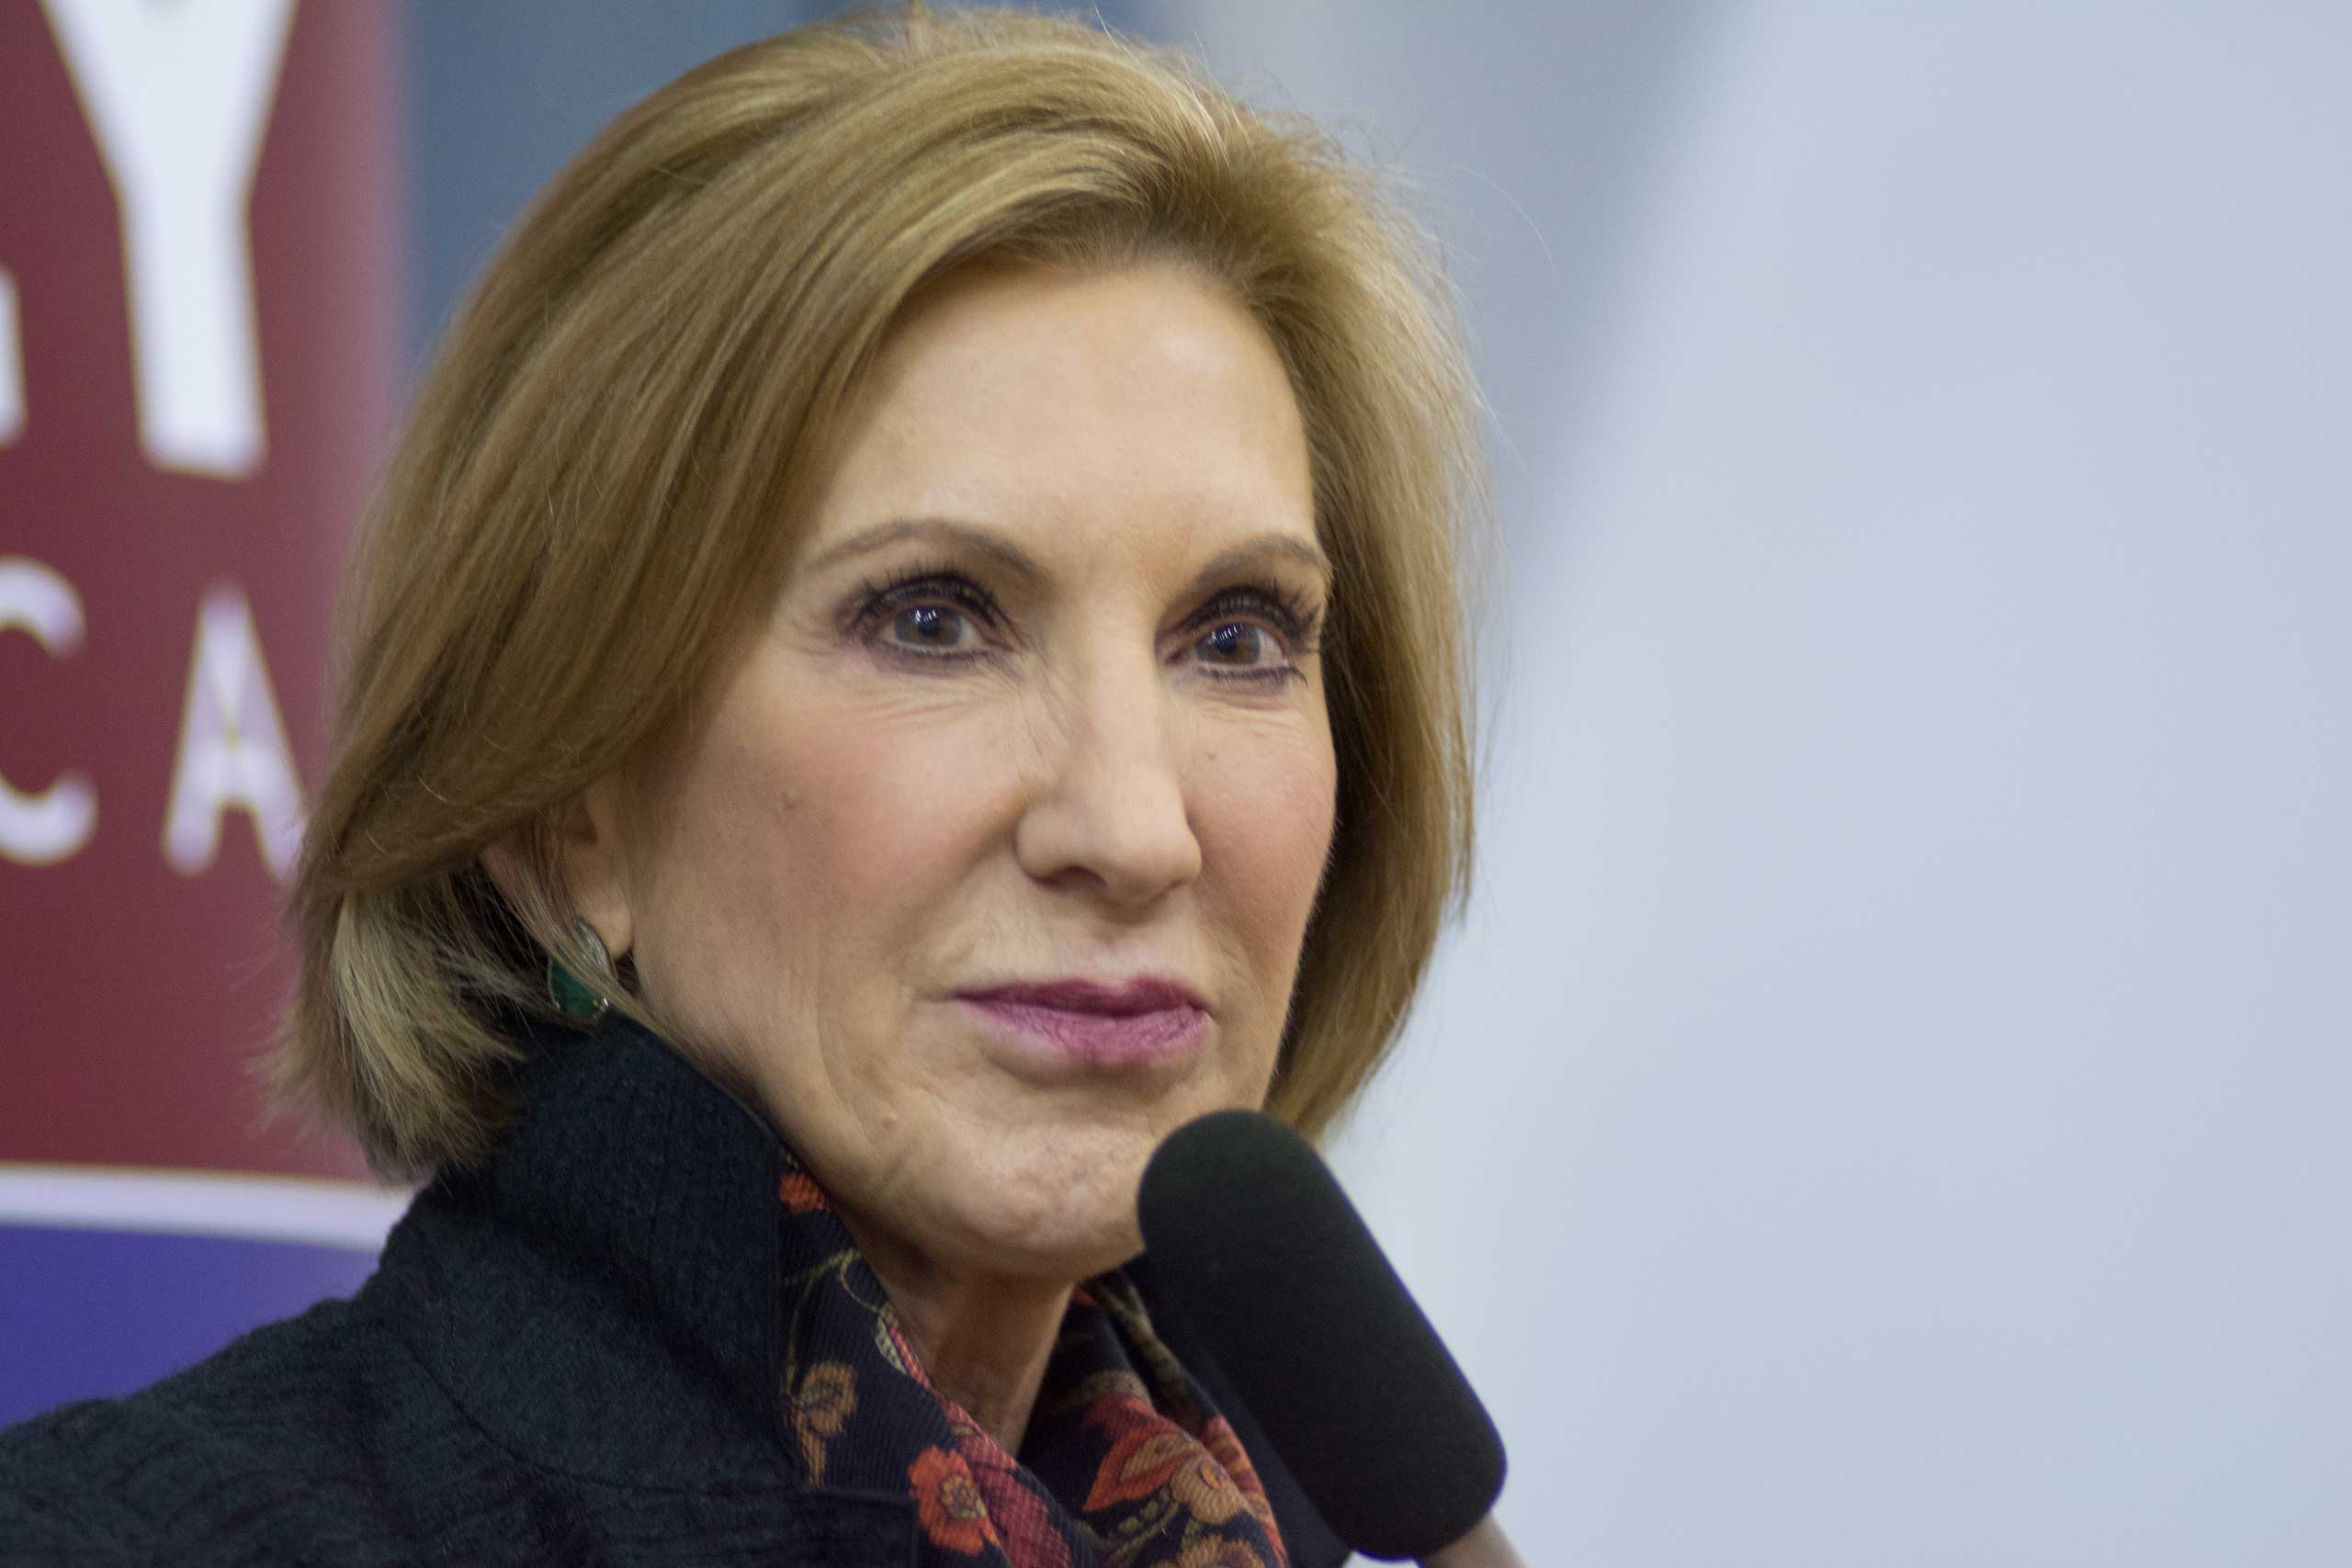 Republican presidential candidate Carly Fiorina speaks at a campaign event hosted by the Seacoast Republican Women in Portsmouth, New Hampshire, on Oct. 3, 2015.